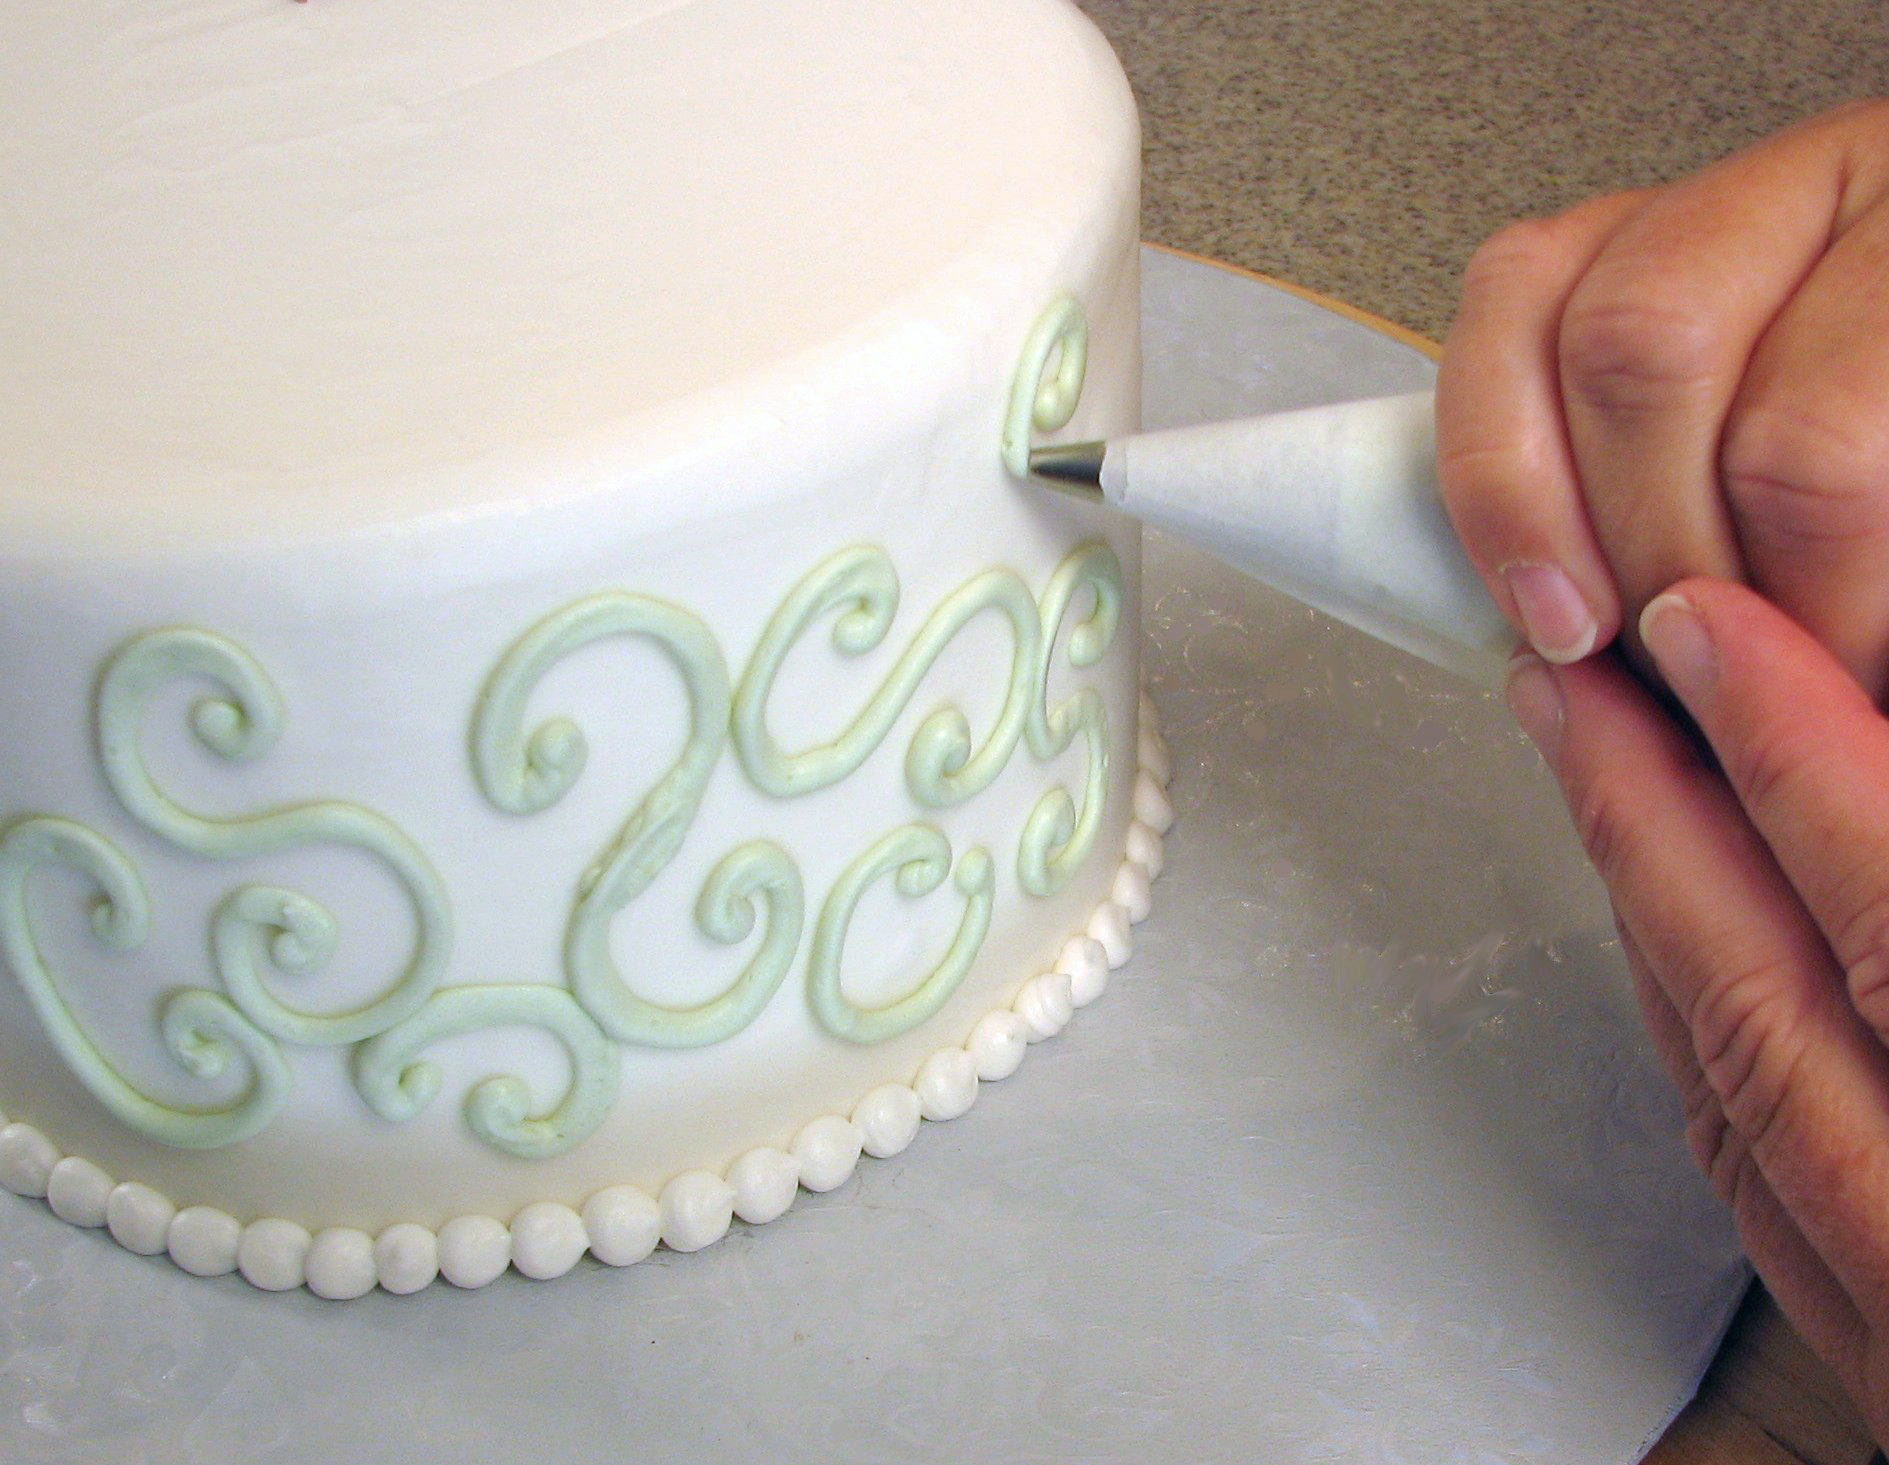 ccdc2c66b8ef Cake decorating - Wikipedia